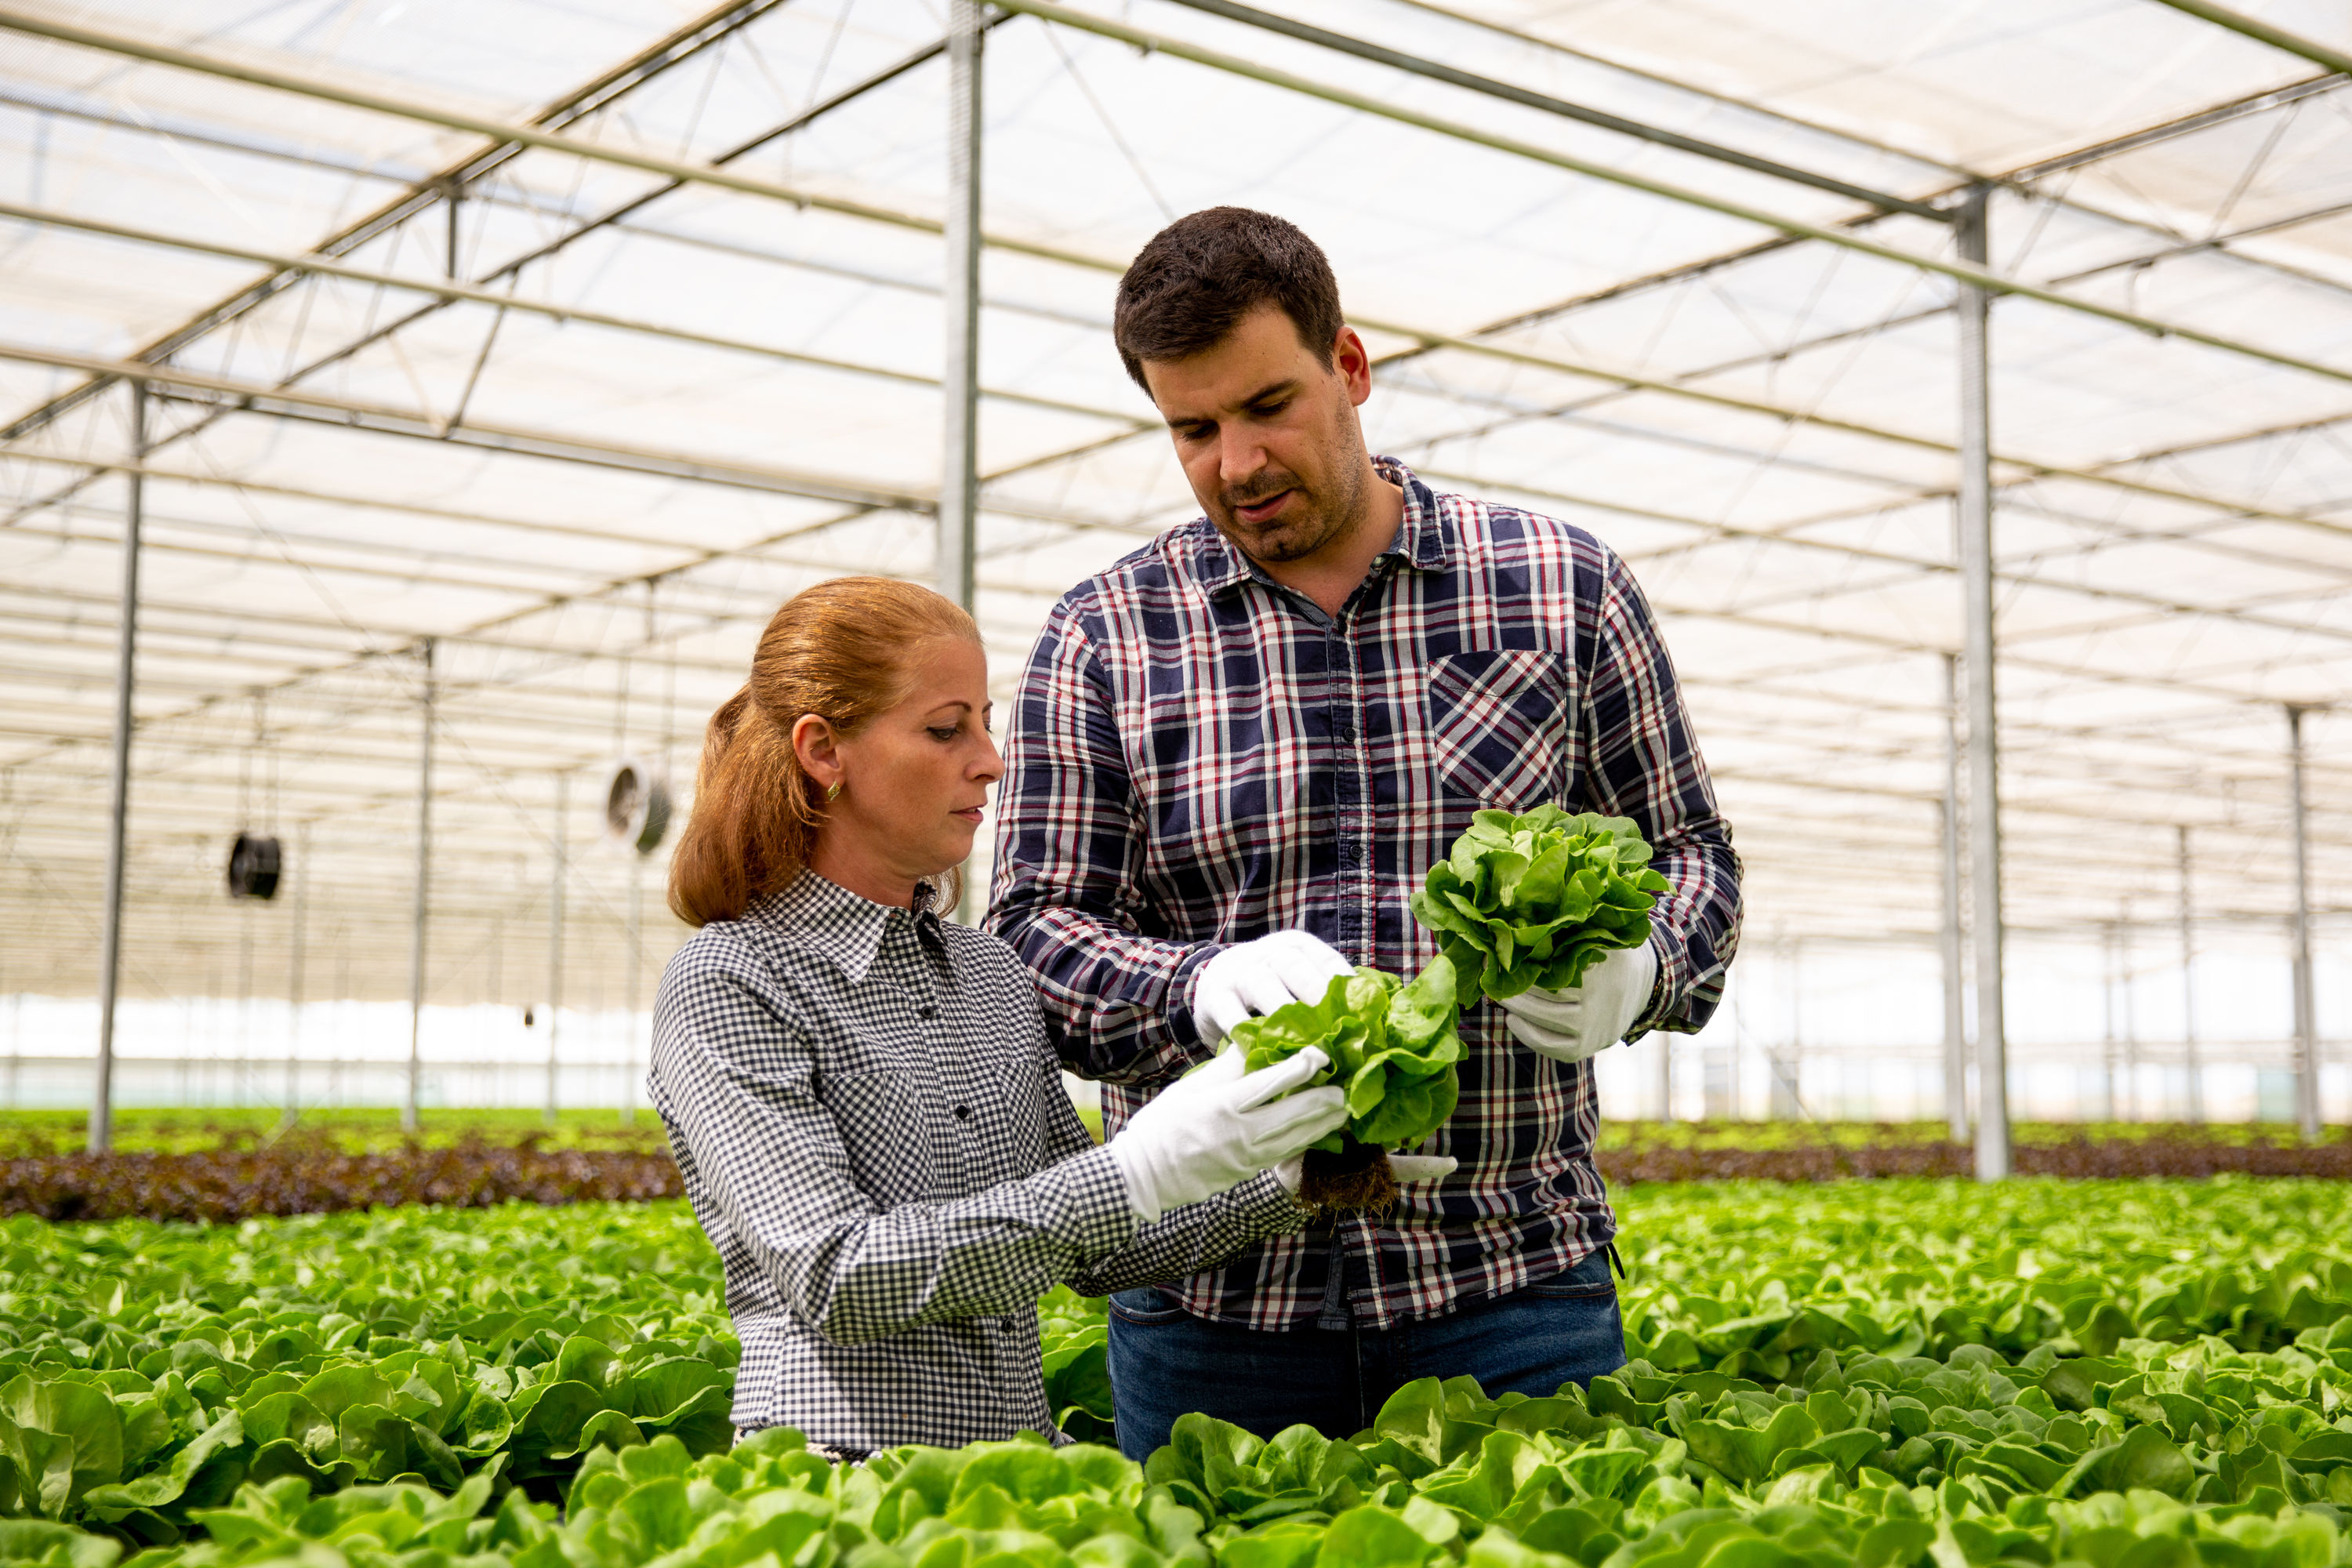 Two researchers inspect plants in a hydroponics greenhouse